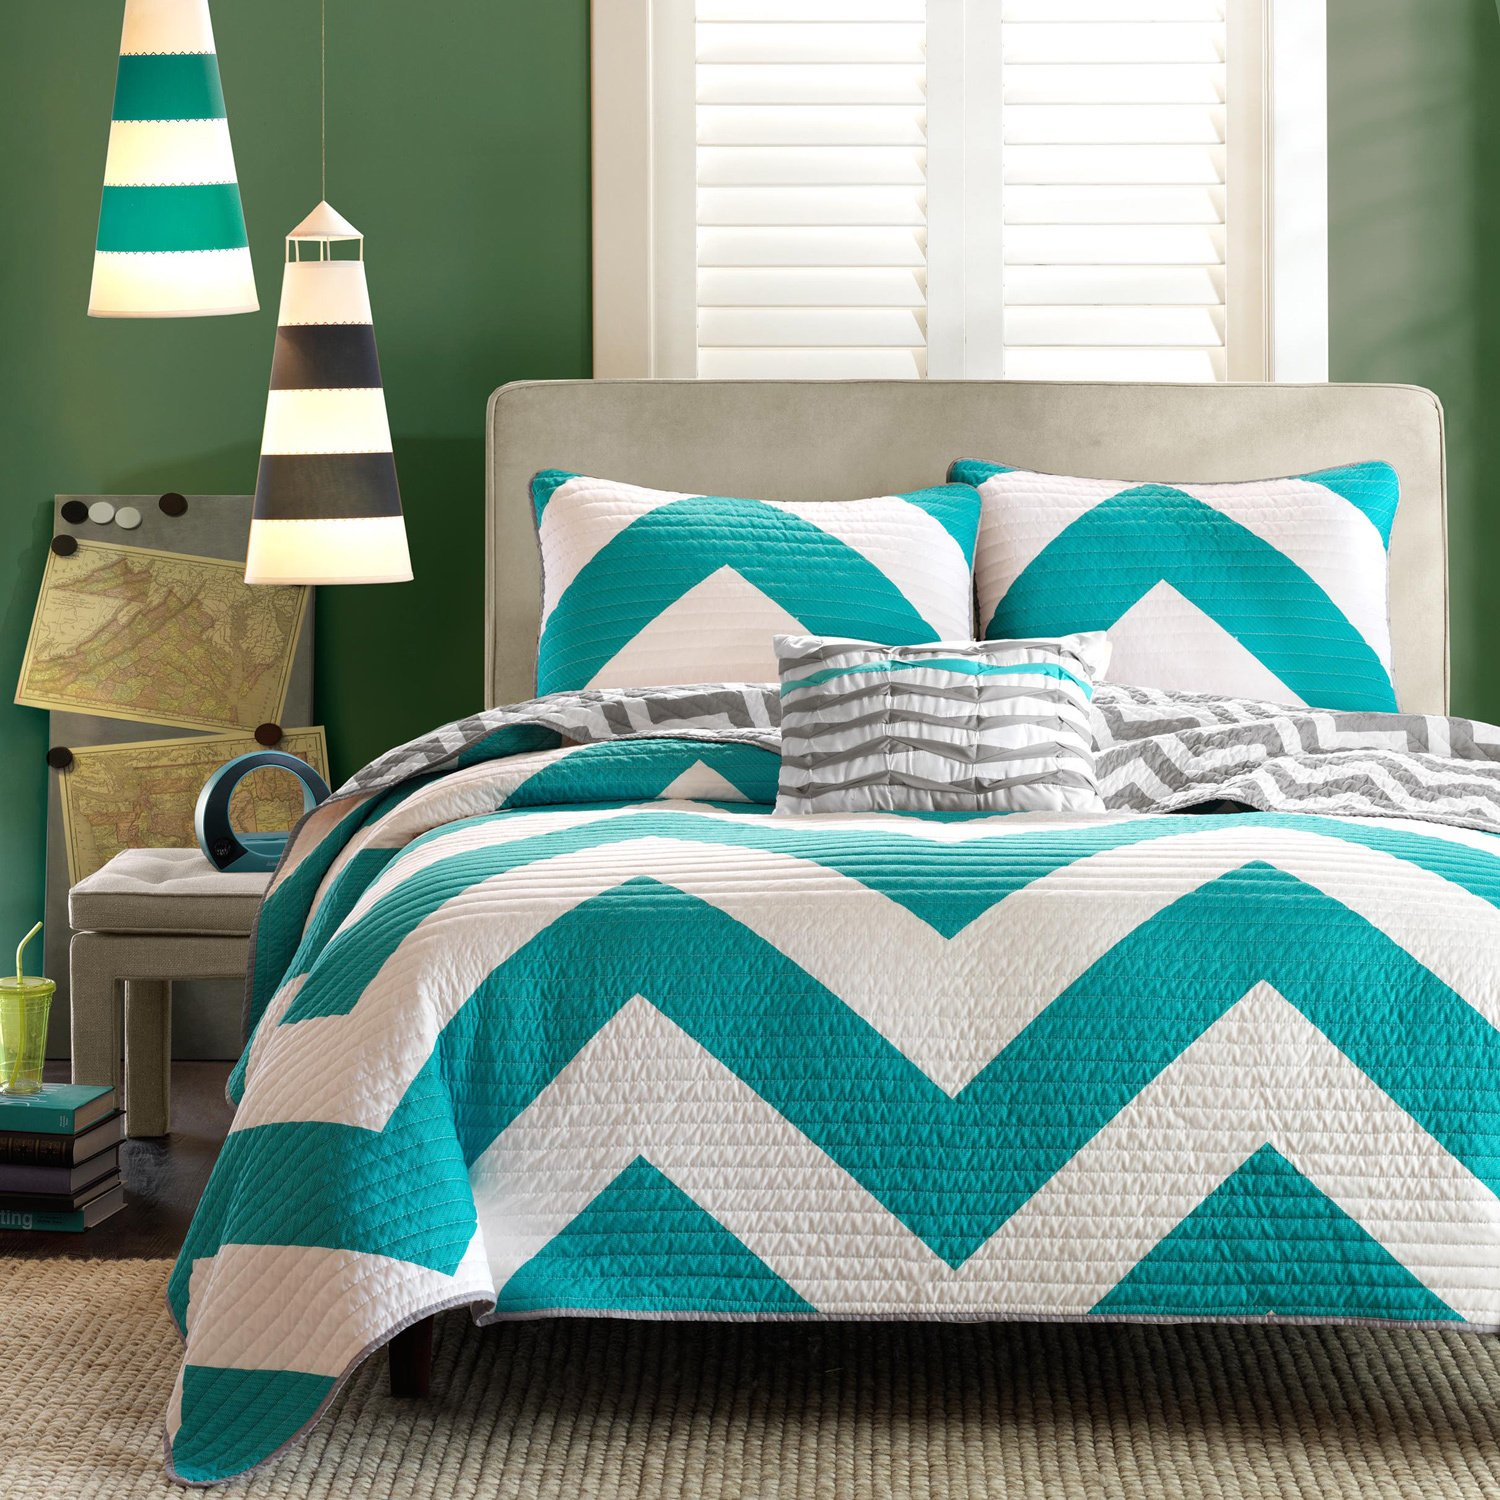 Bedding sets turquoise - 4 Pc Zig Zag Reversible Chevron Bedspread Quilt With Matching Shams And Cushion Pillow Aqua